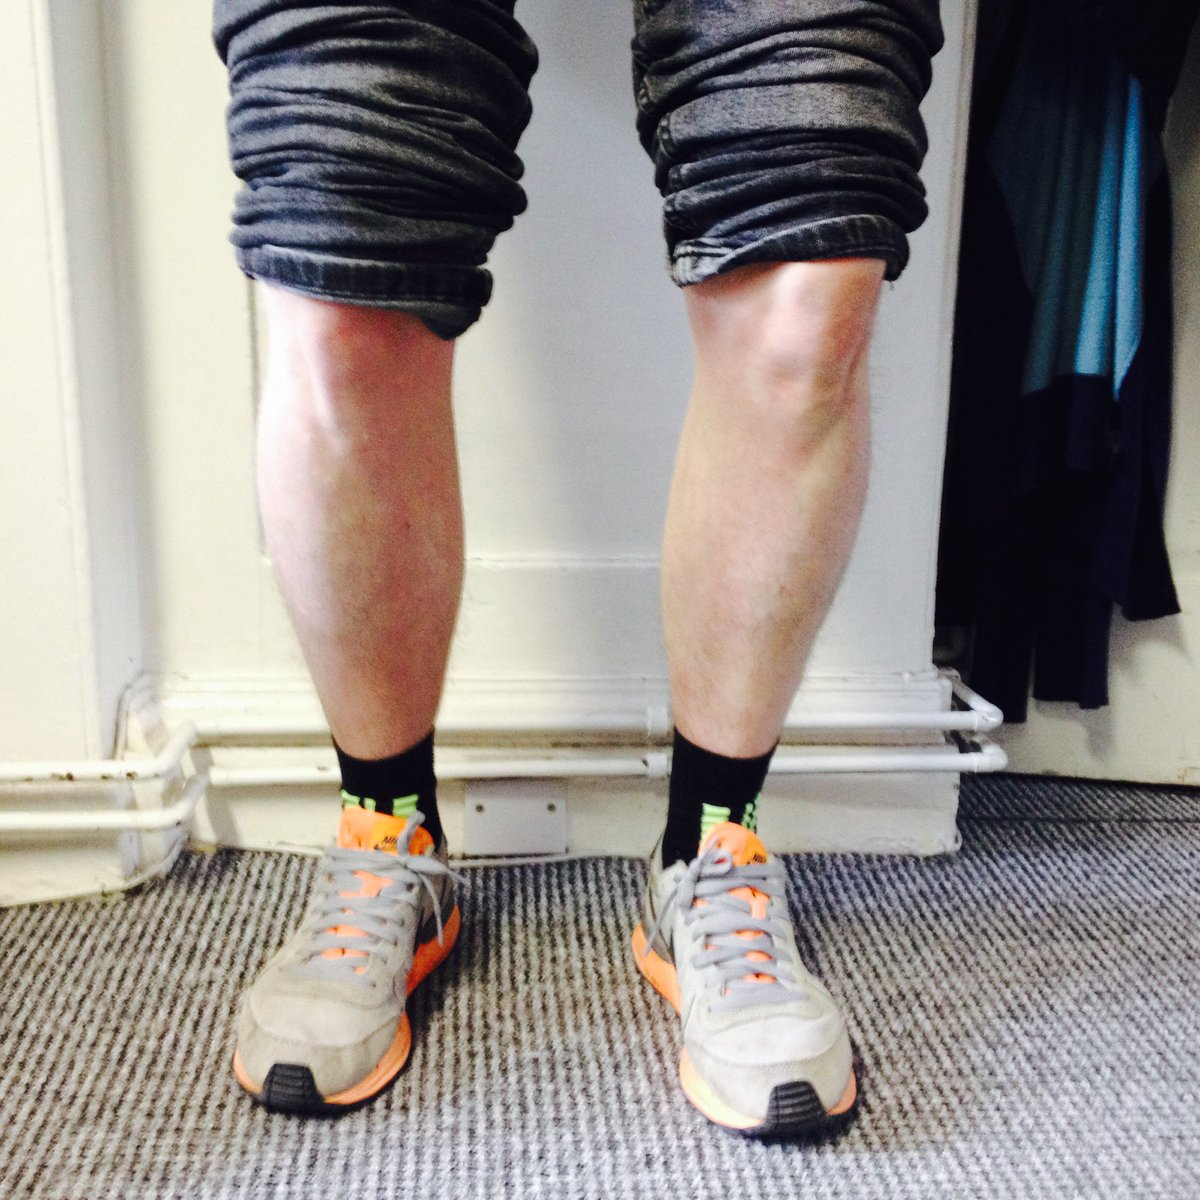 Get your knees out for the @PierReview lads! #knobblyknees https://t.co/17eoyhnBUv https://t.co/BPlWUb0l90